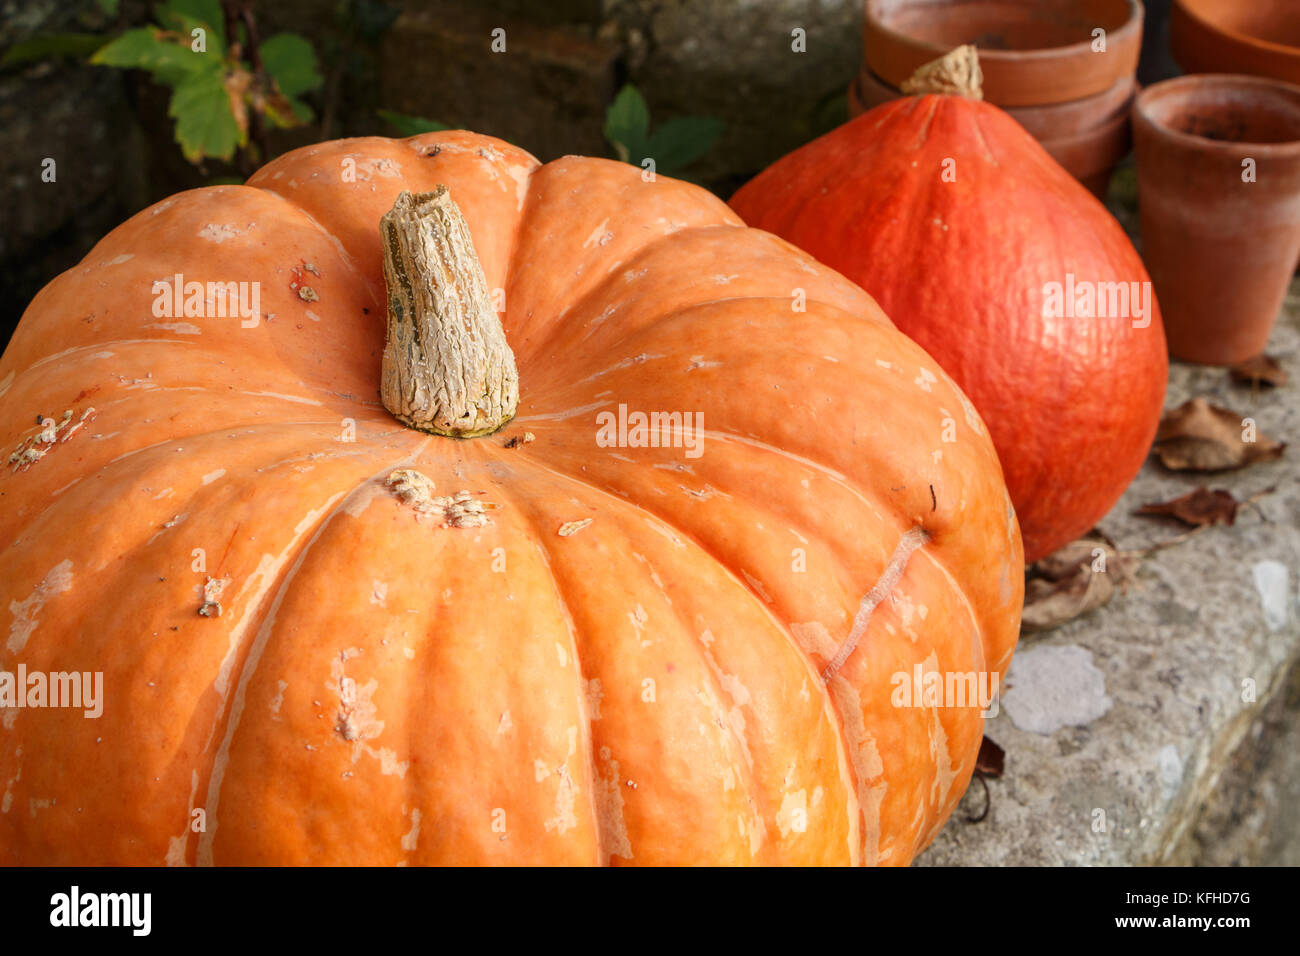 Pumpkins on the coping of a well in a garden during autumn - Stock Image